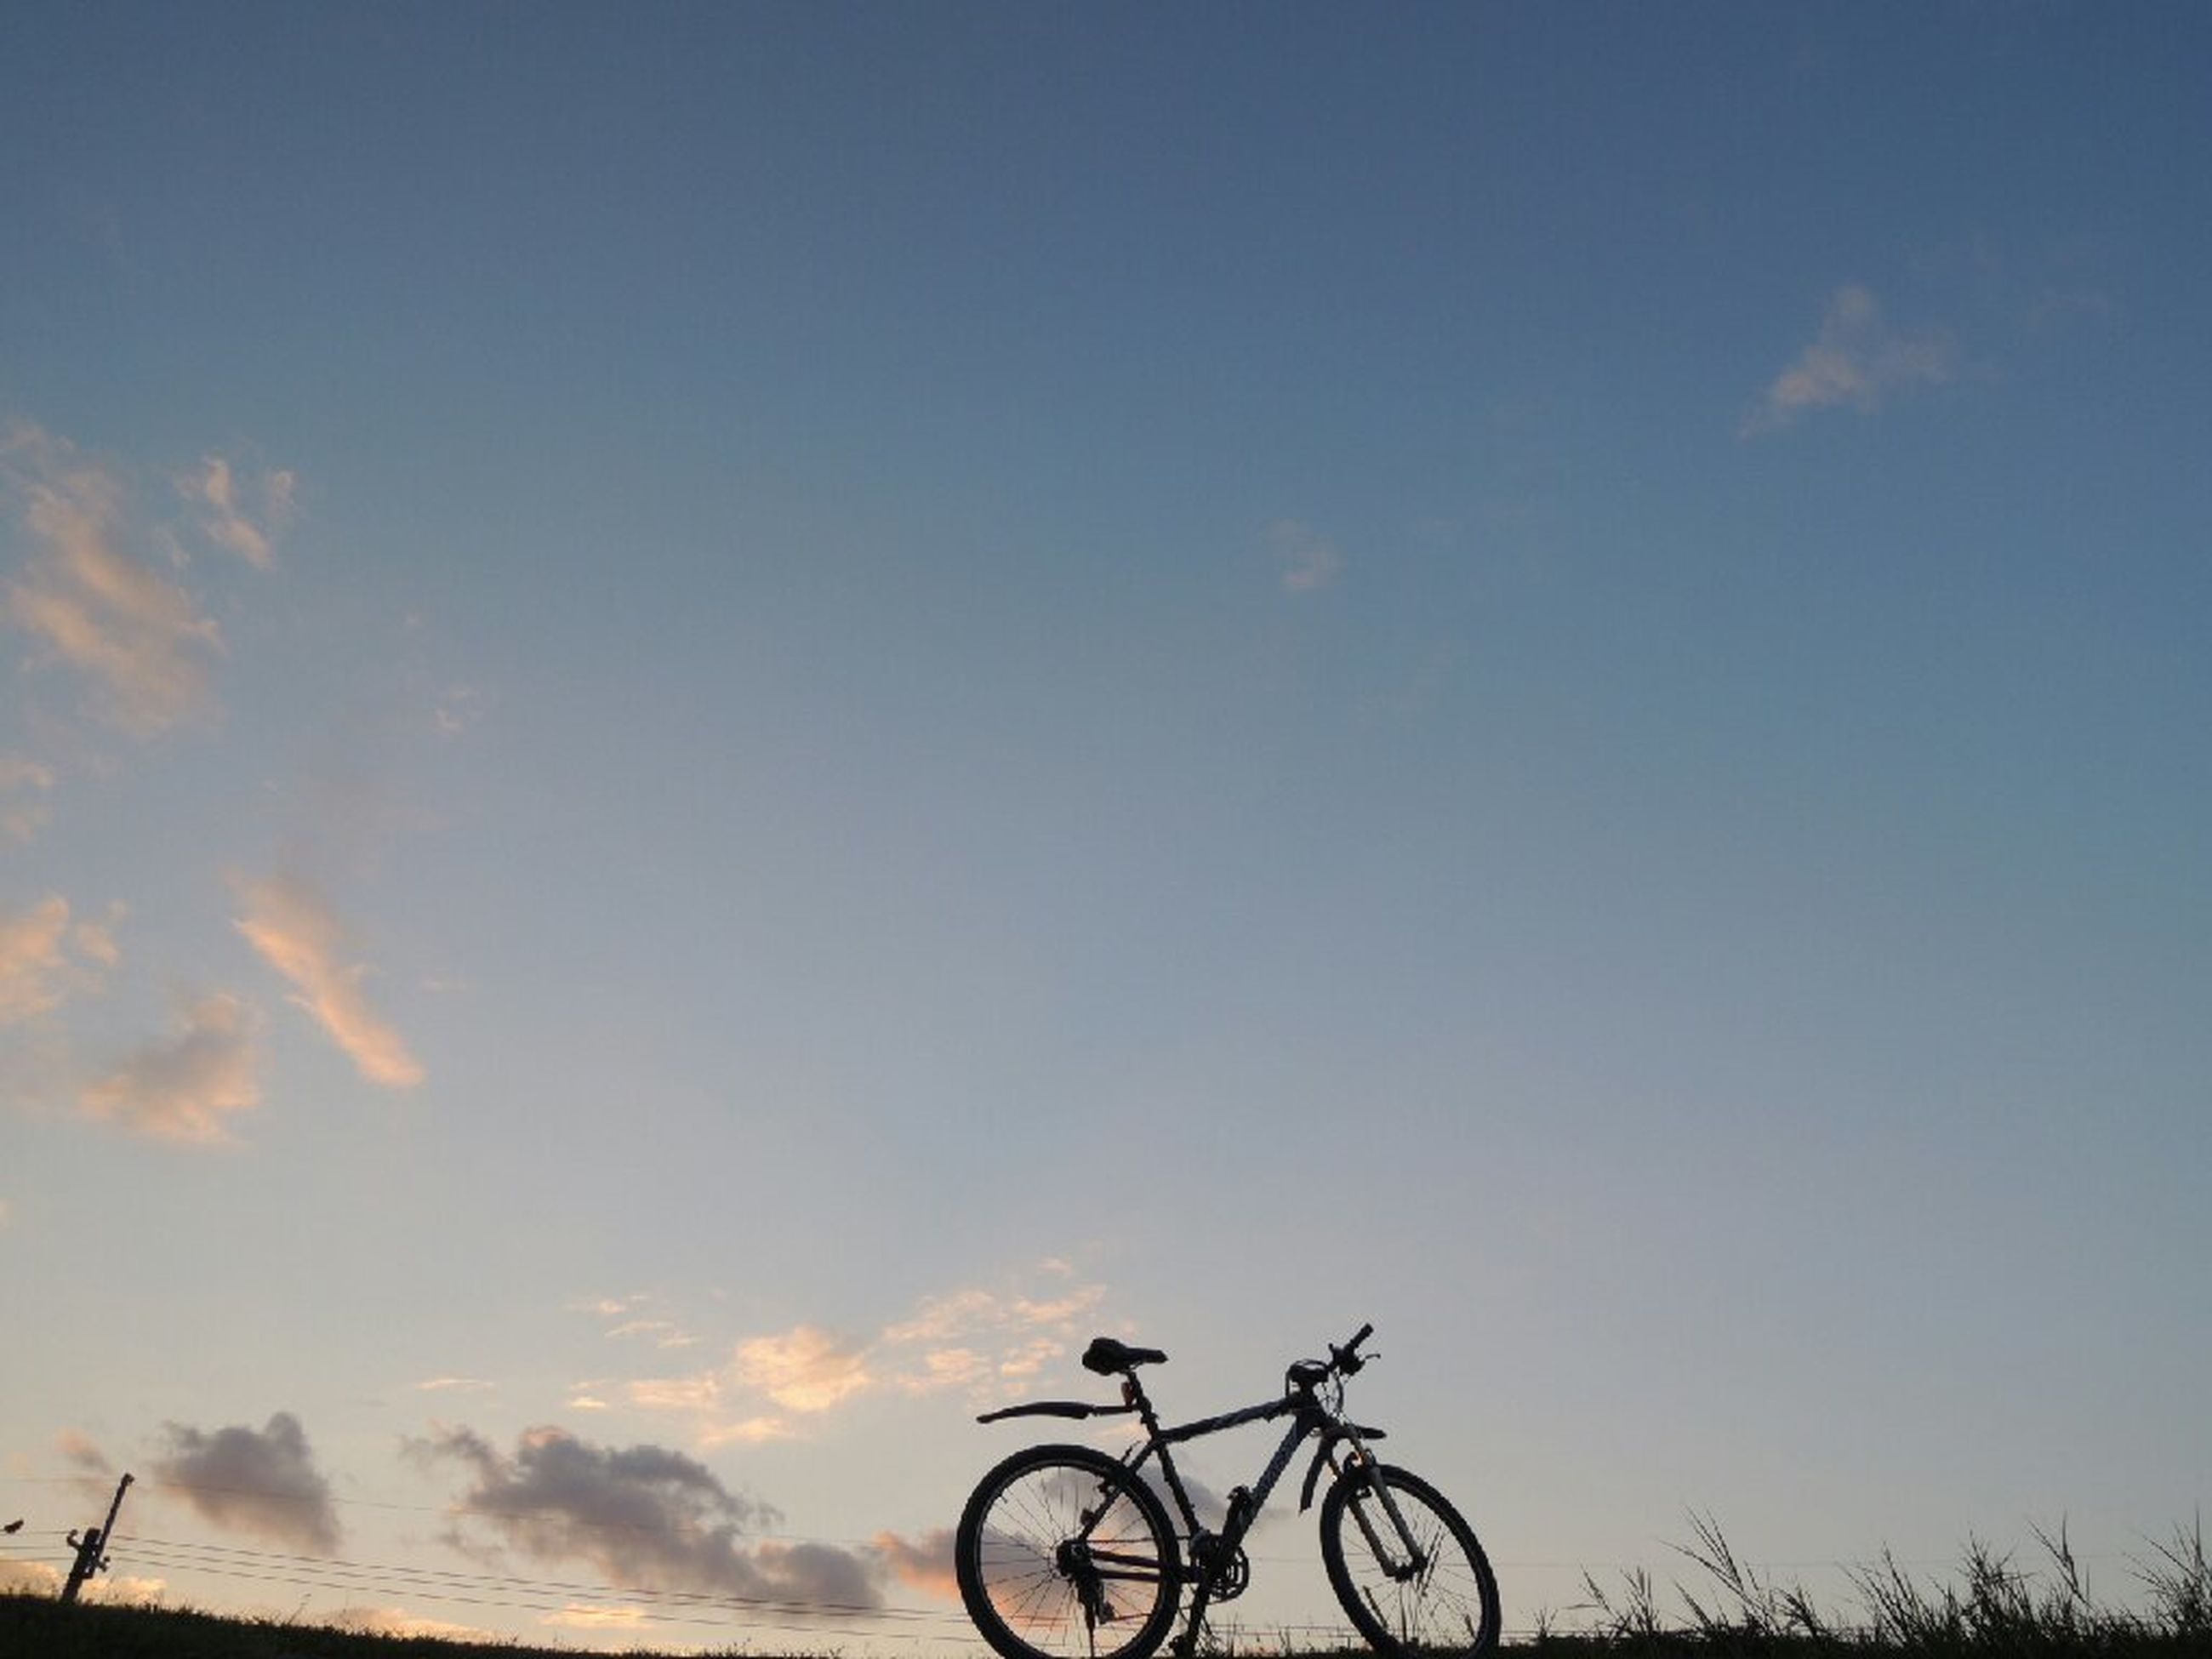 bicycle, transportation, mode of transport, land vehicle, stationary, parked, parking, sky, copy space, silhouette, clear sky, no people, outdoors, cycling, tranquility, low angle view, nature, day, sunlight, riding